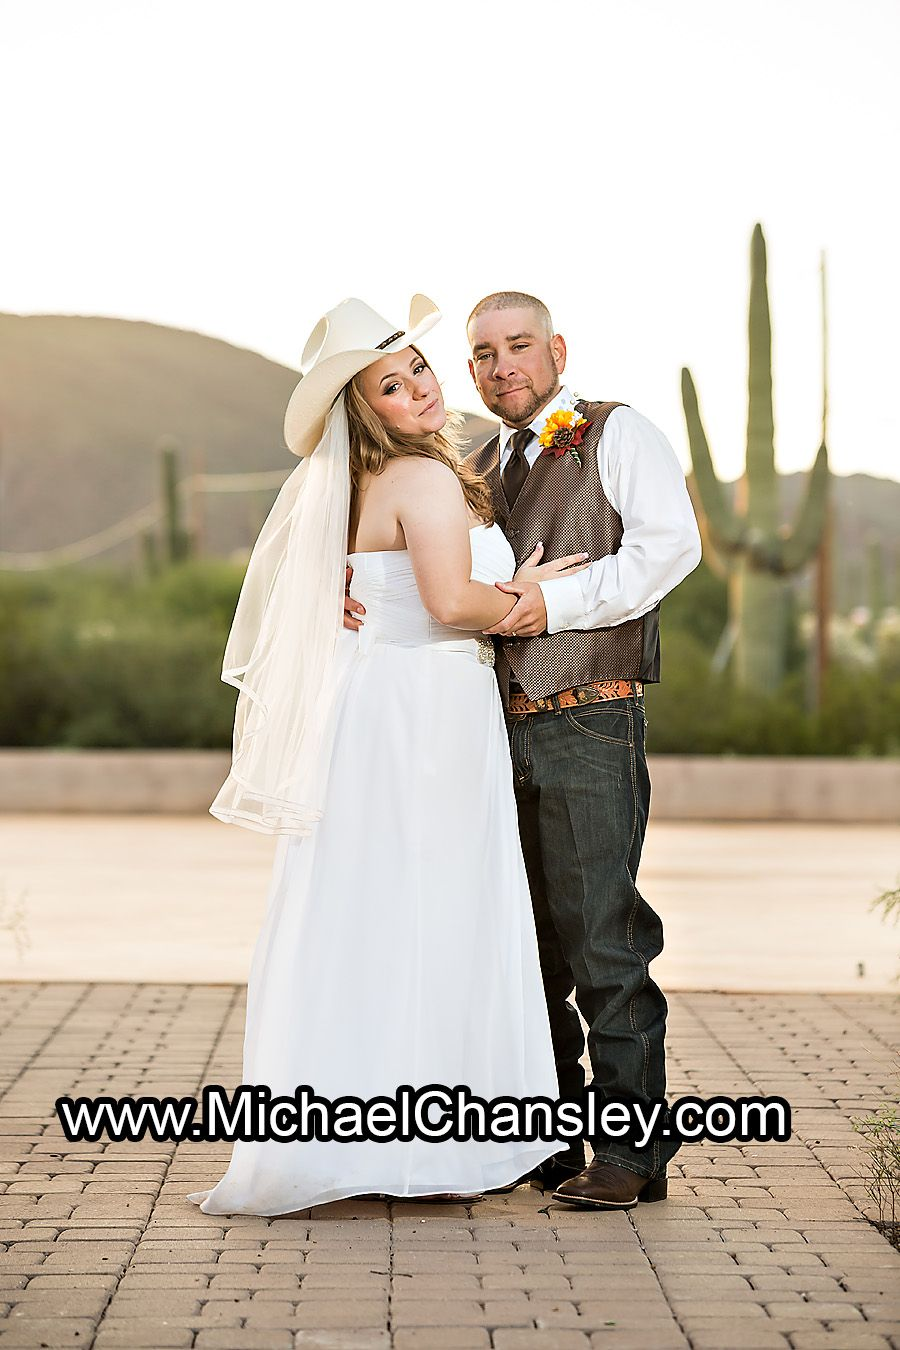 Bride And Groom Posed Portrait With Cowboy Hat At Oasis Wild Horse Ranch Wedding Venue In Tucson AZ Arizona By Michael Chansley Photography